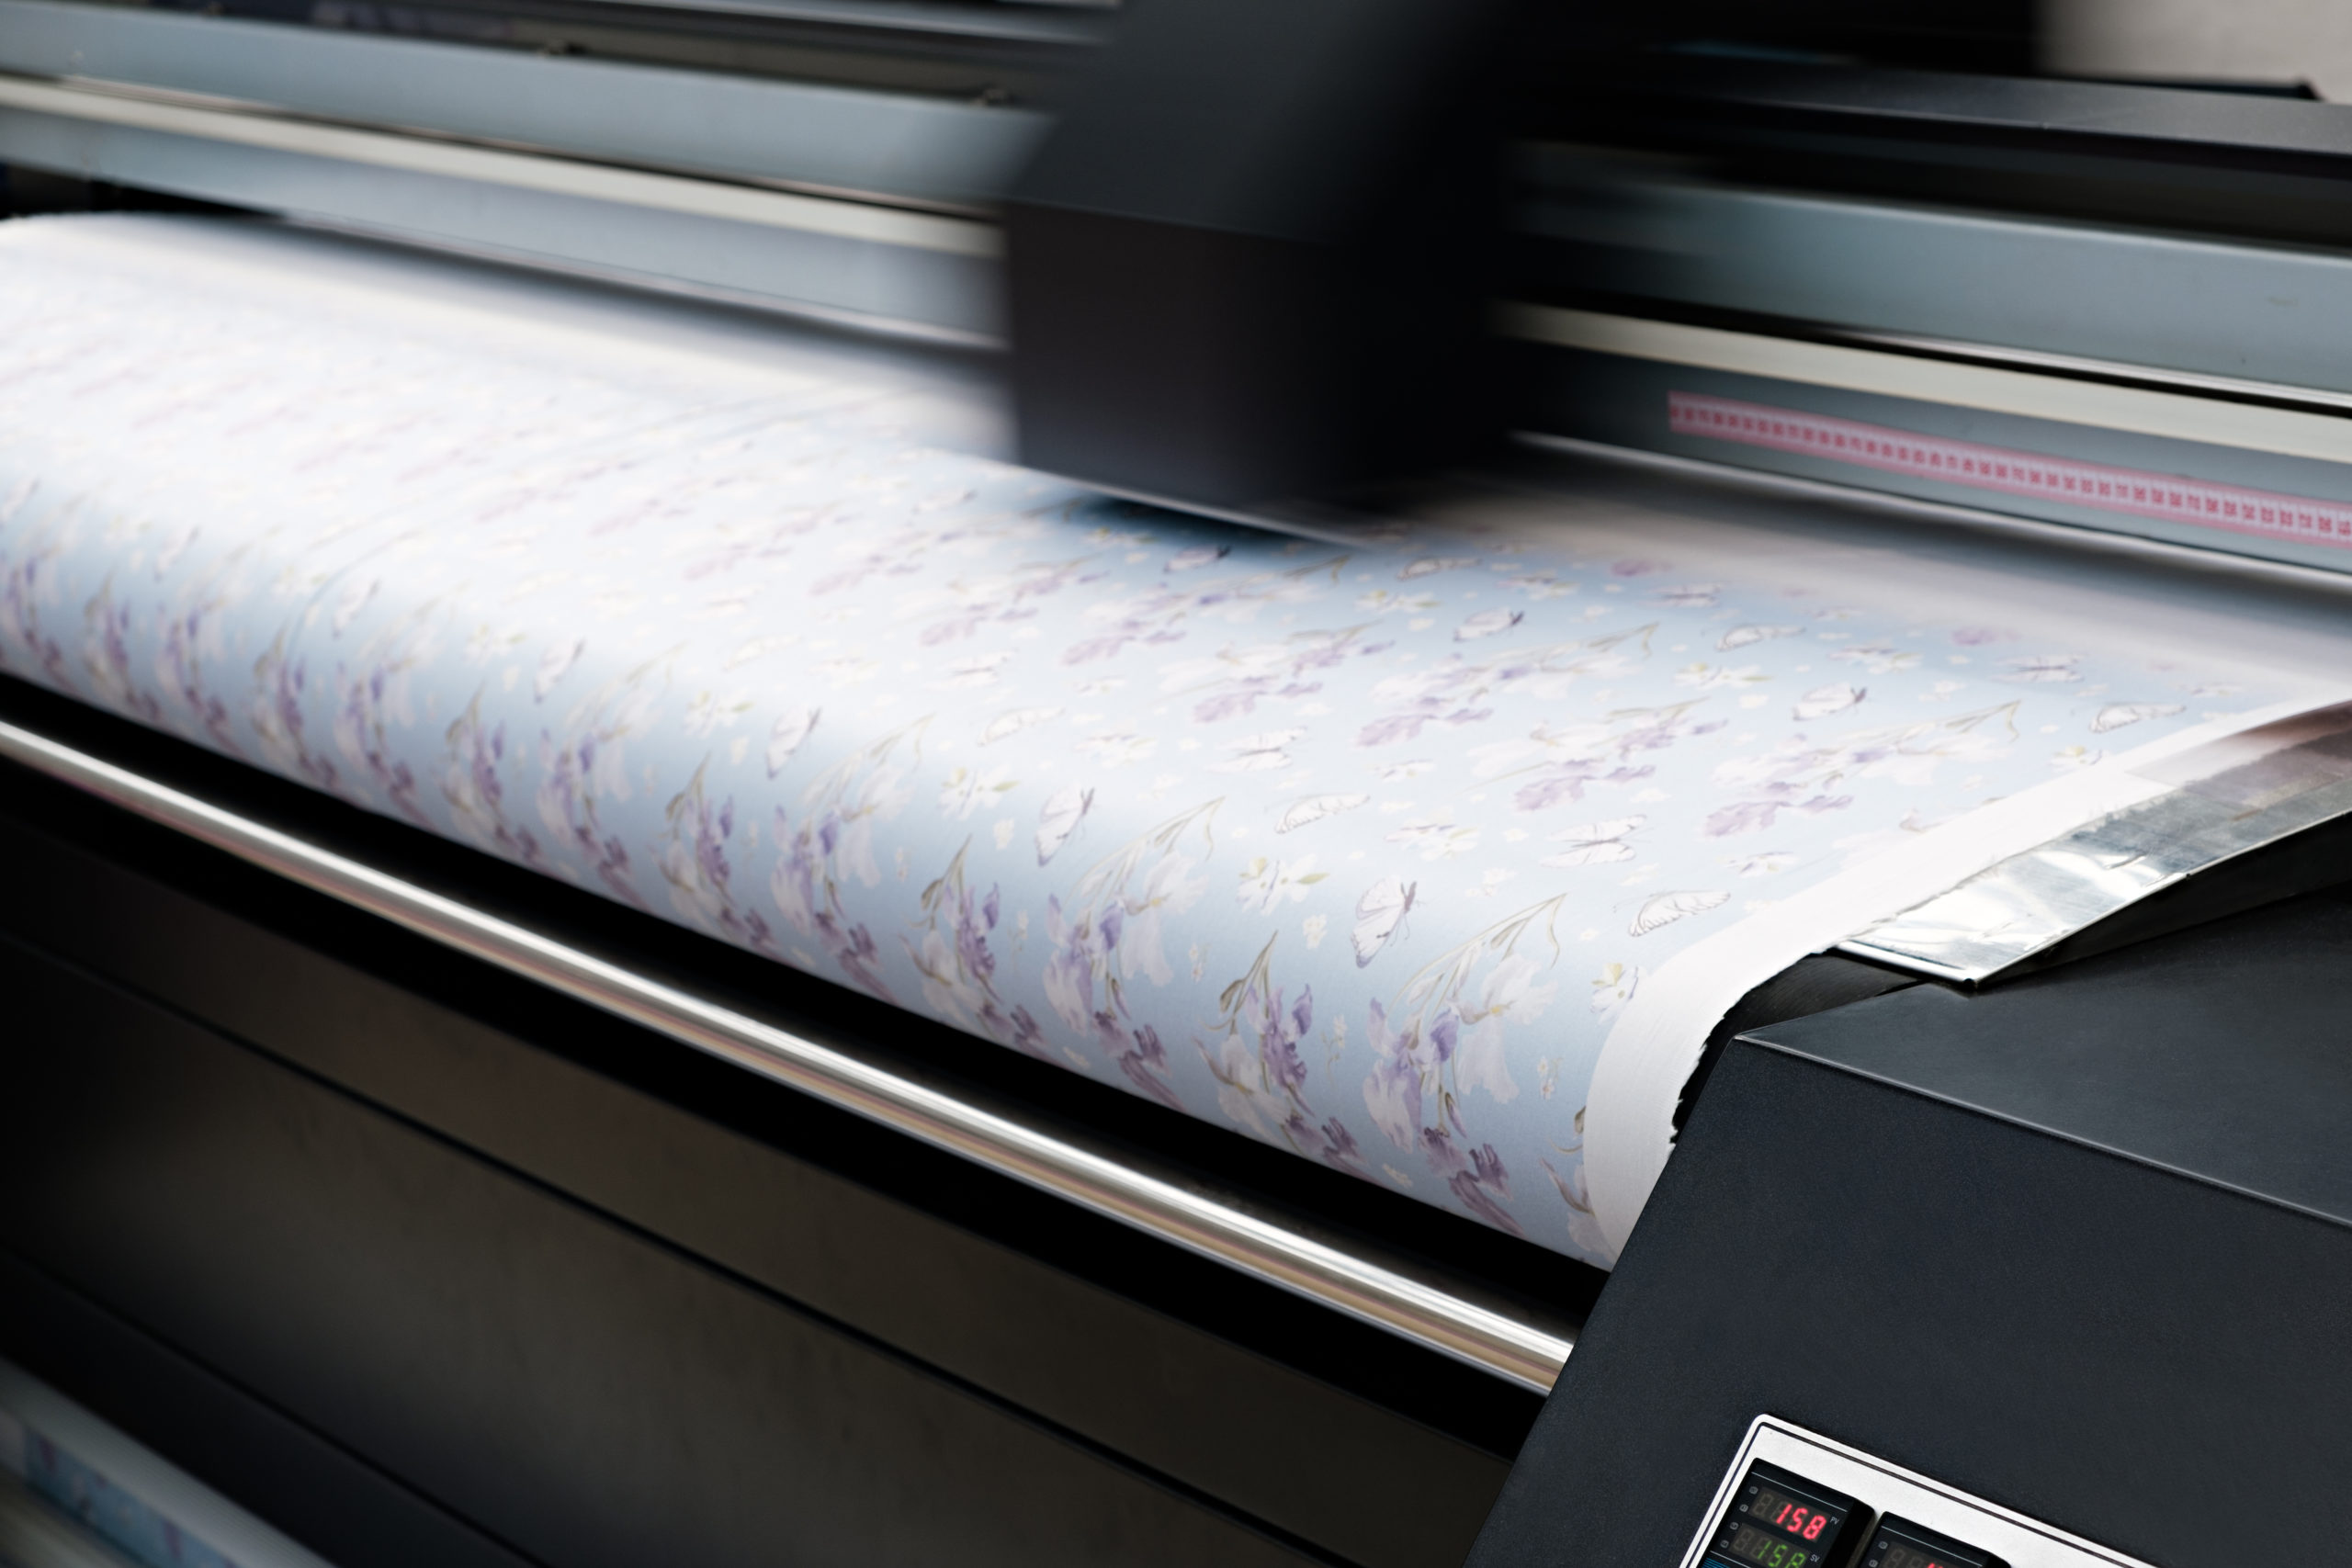 Industrial printing on woven material; modern digital inkjet printer puts a blue pattern picture on a cloth canvas